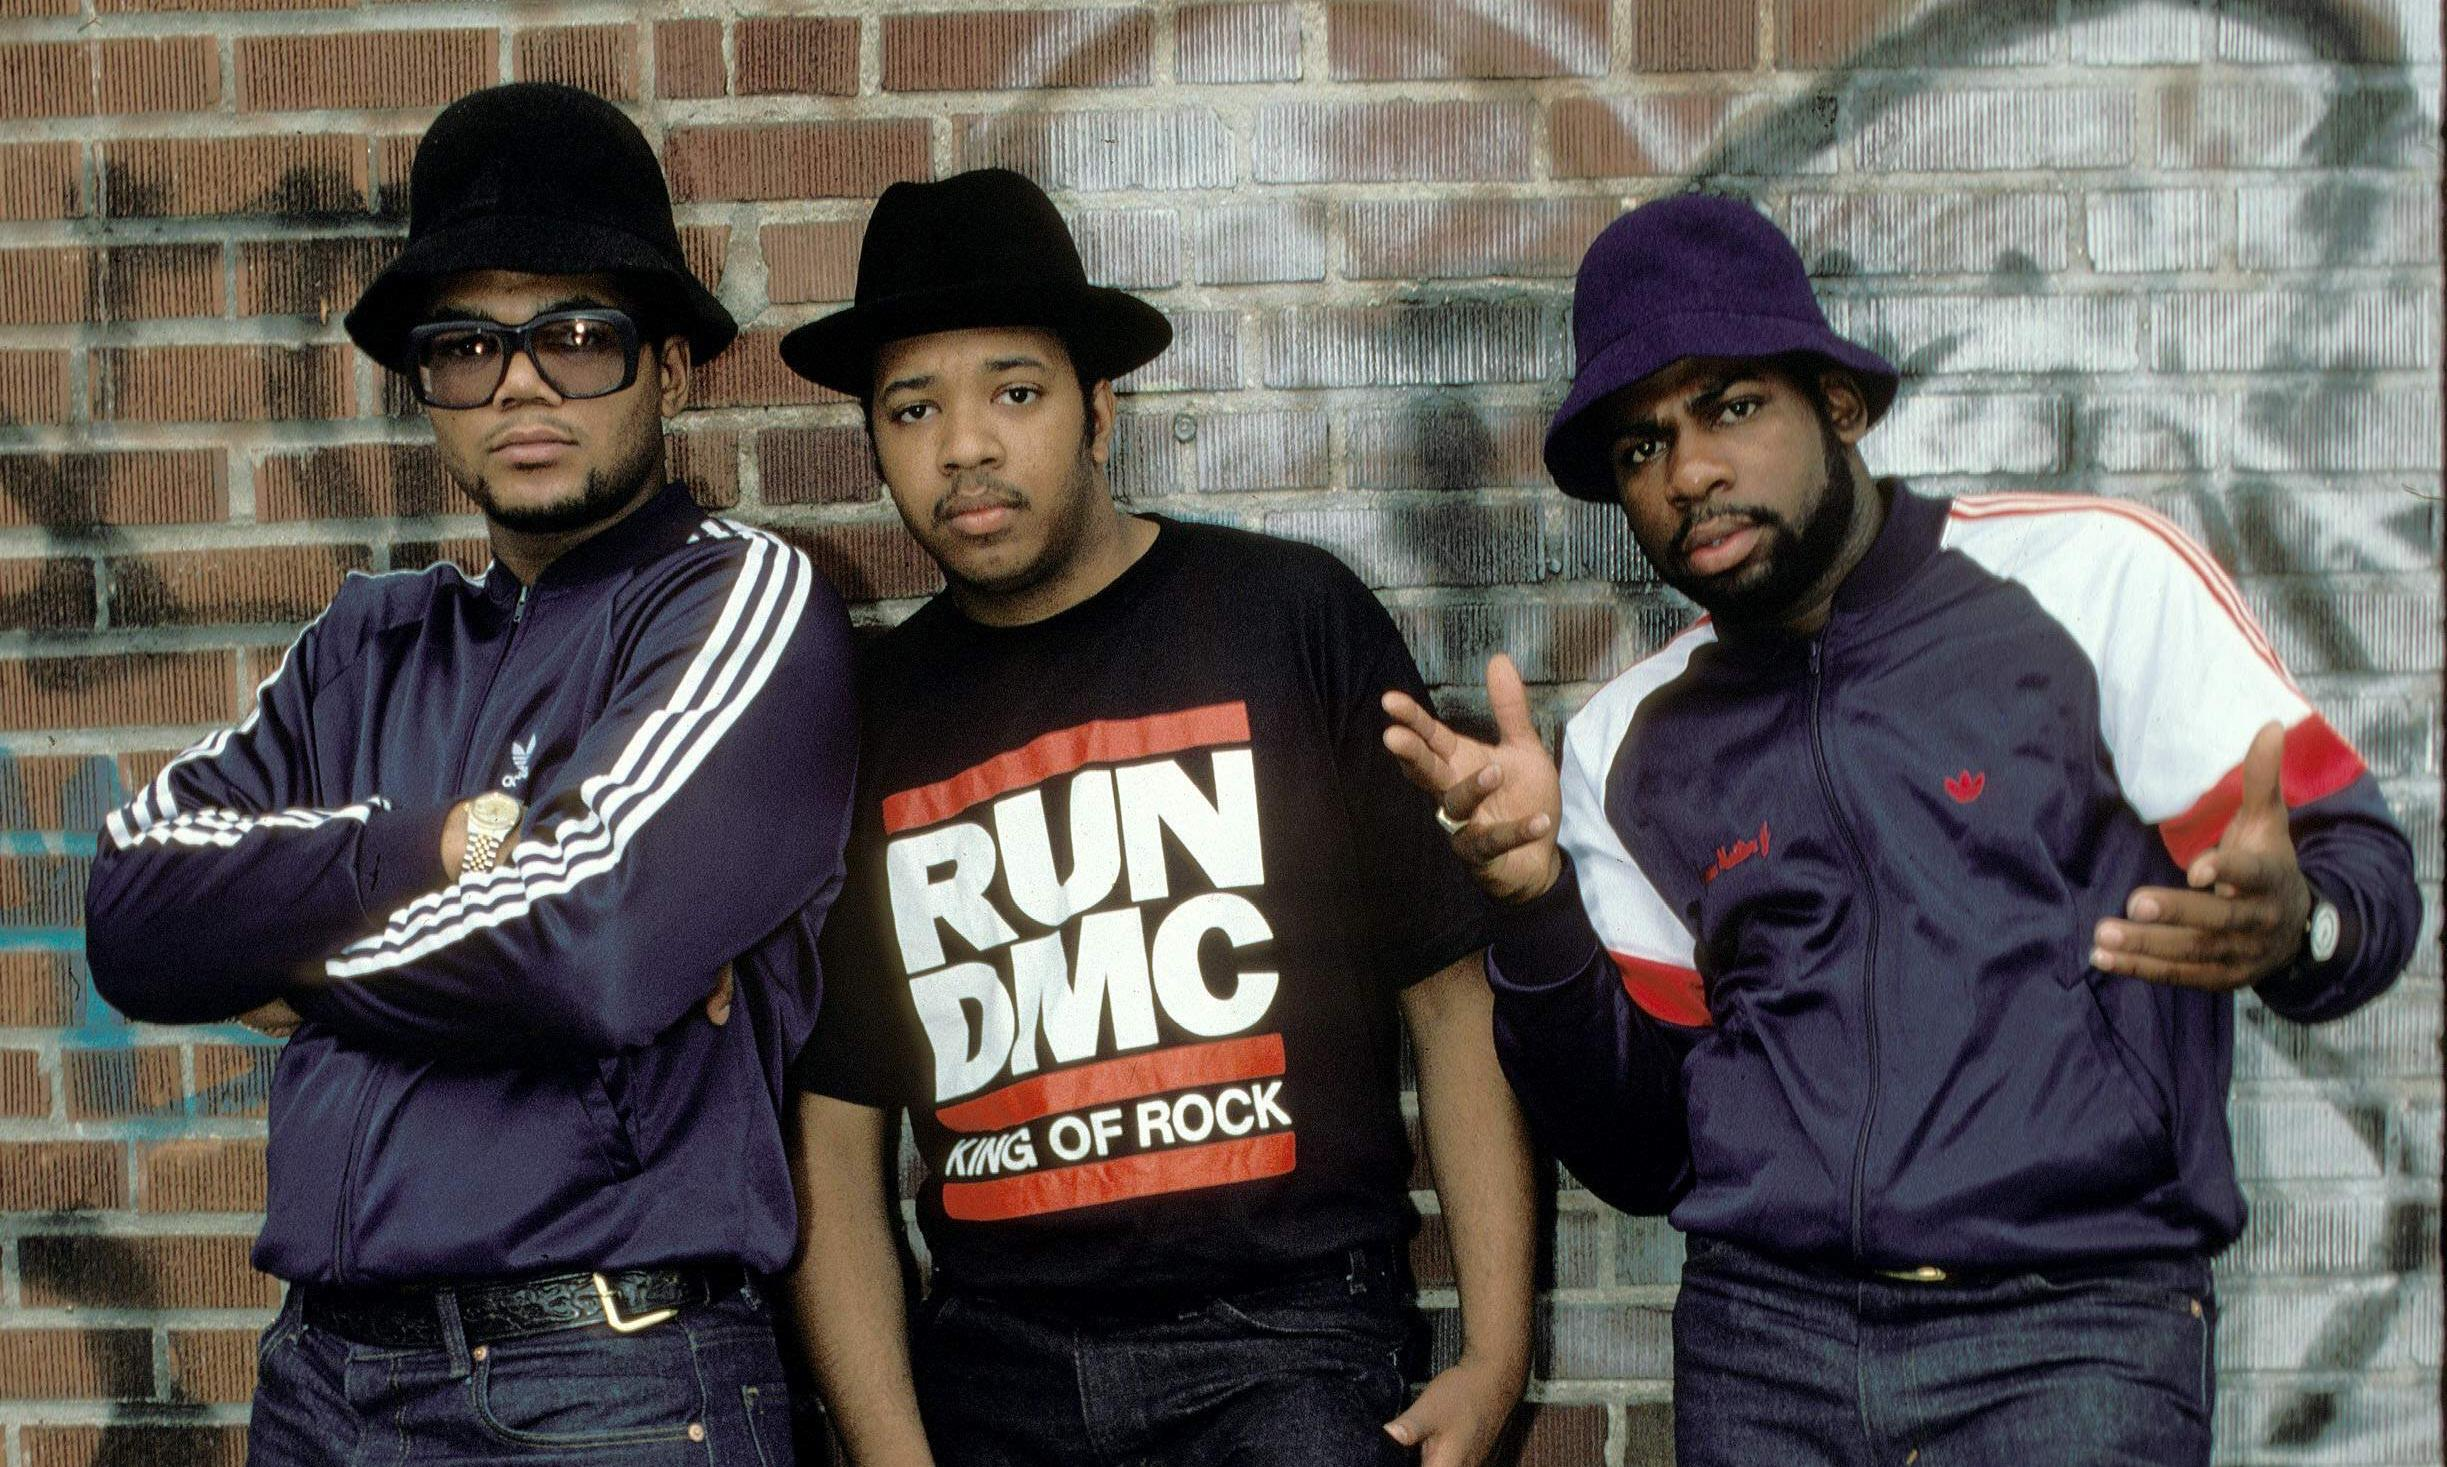 UK Atlantic Records boss resigns over Run-DMC fancy dress